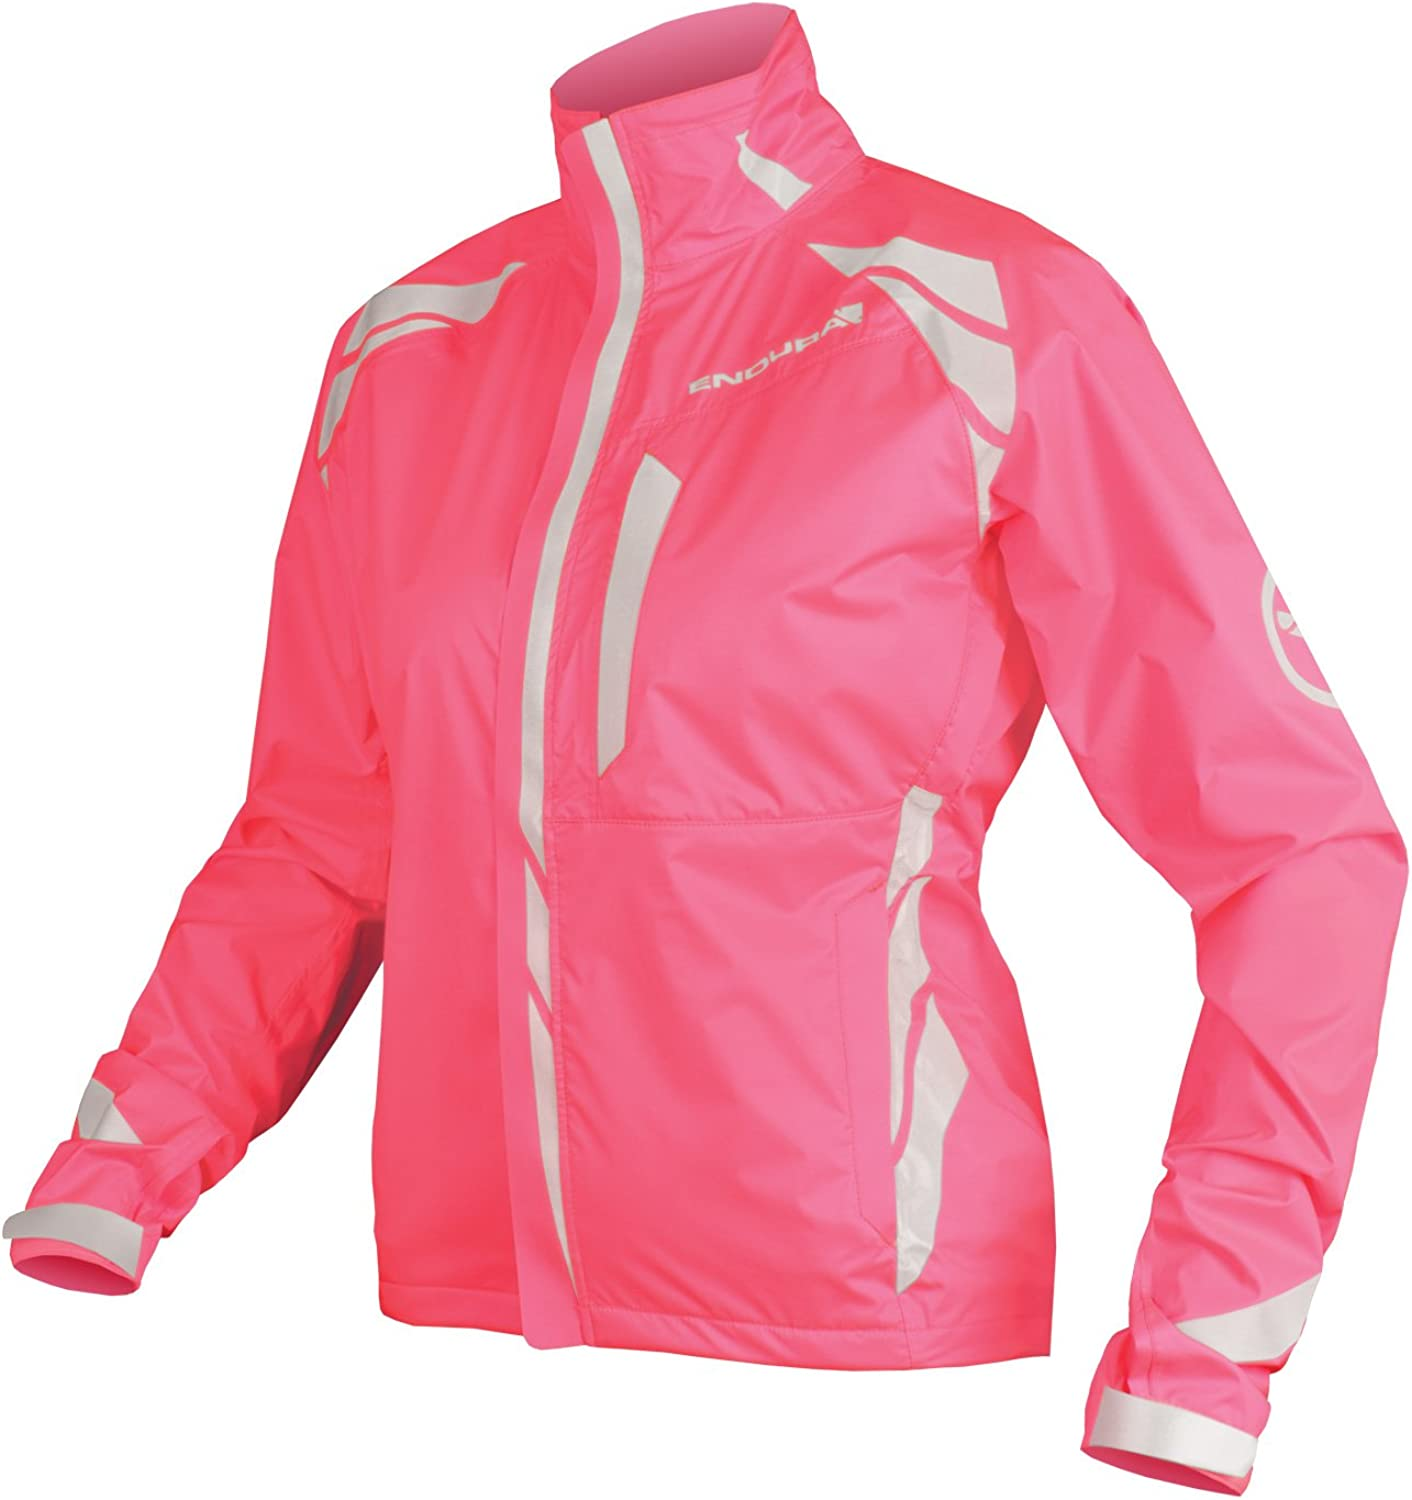 Endura Womens Luminite II Waterproof Cycling Jacket